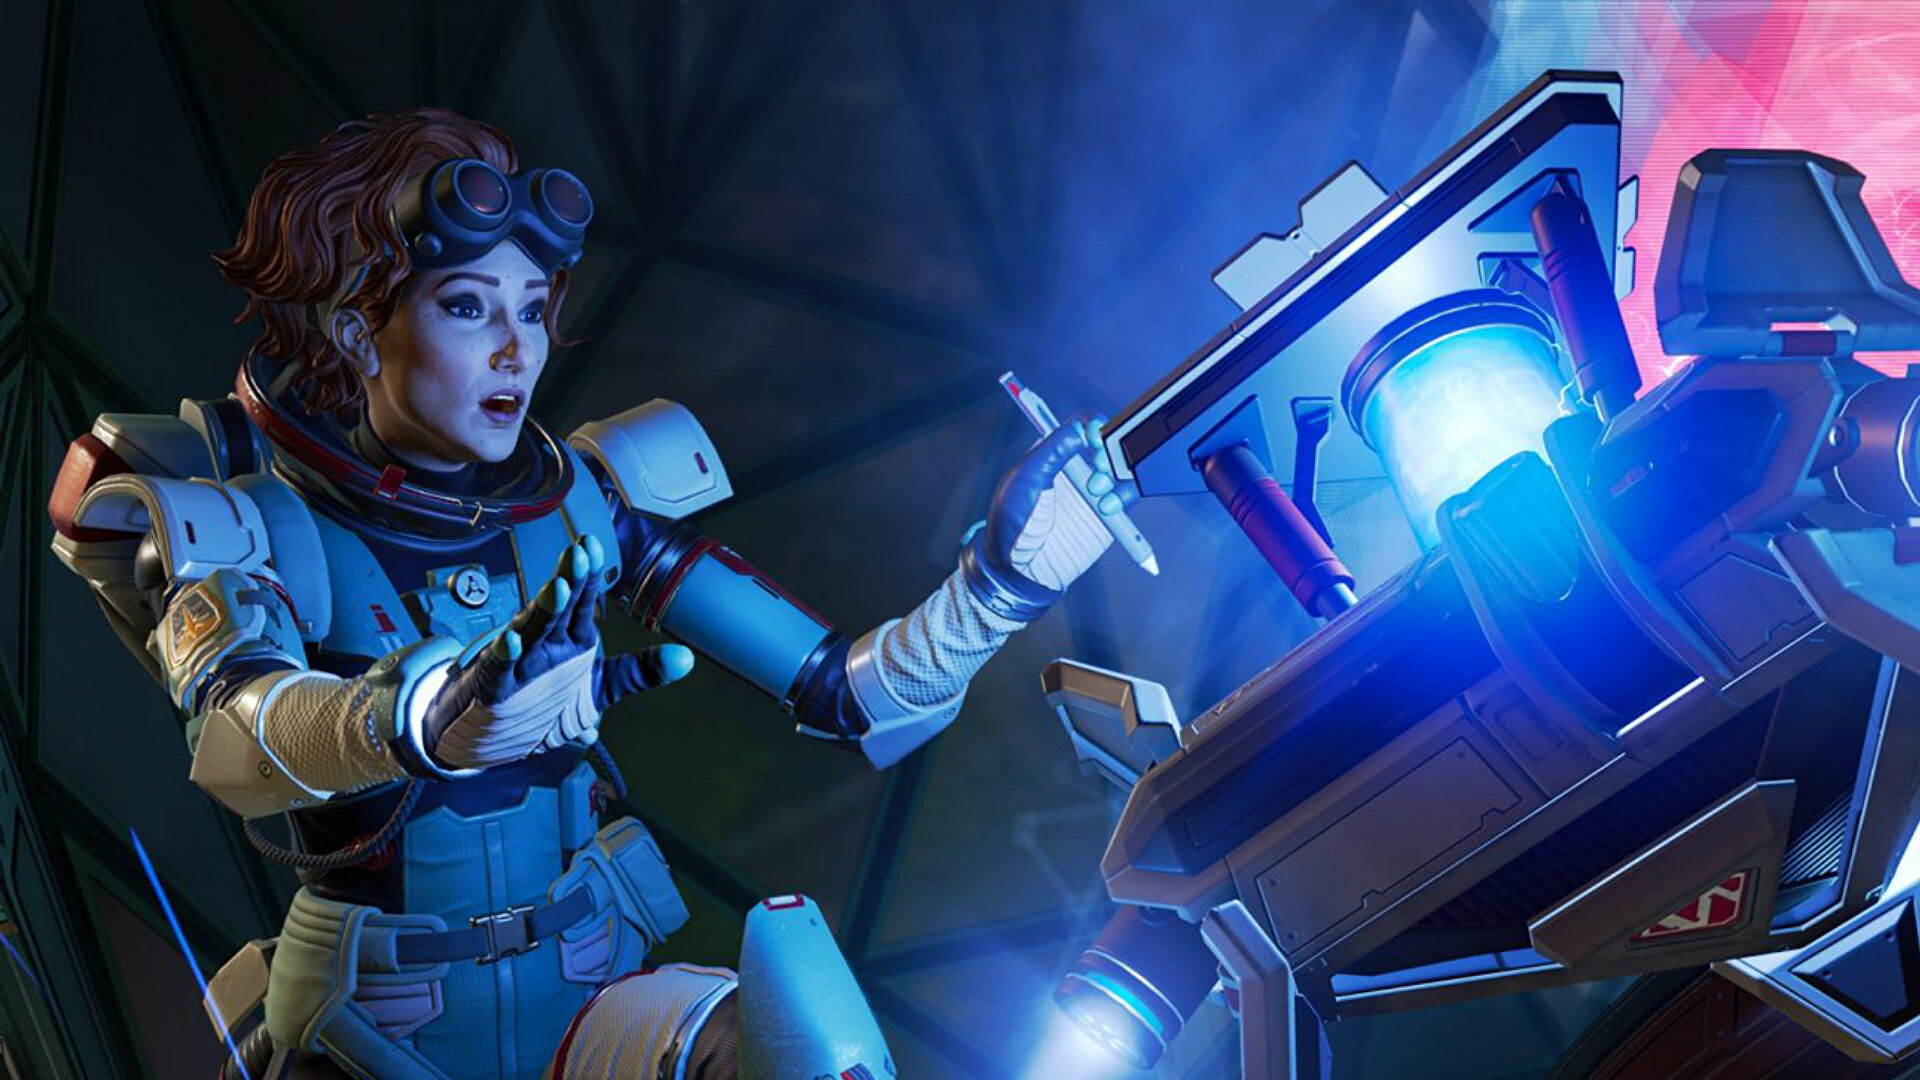 Best Apex Legends characters [Season 8]: Legend tier list, abilities, and tips - Download Best Apex Legends characters : Legend tier list, abilities, and tips for FREE - Free Cheats for Games